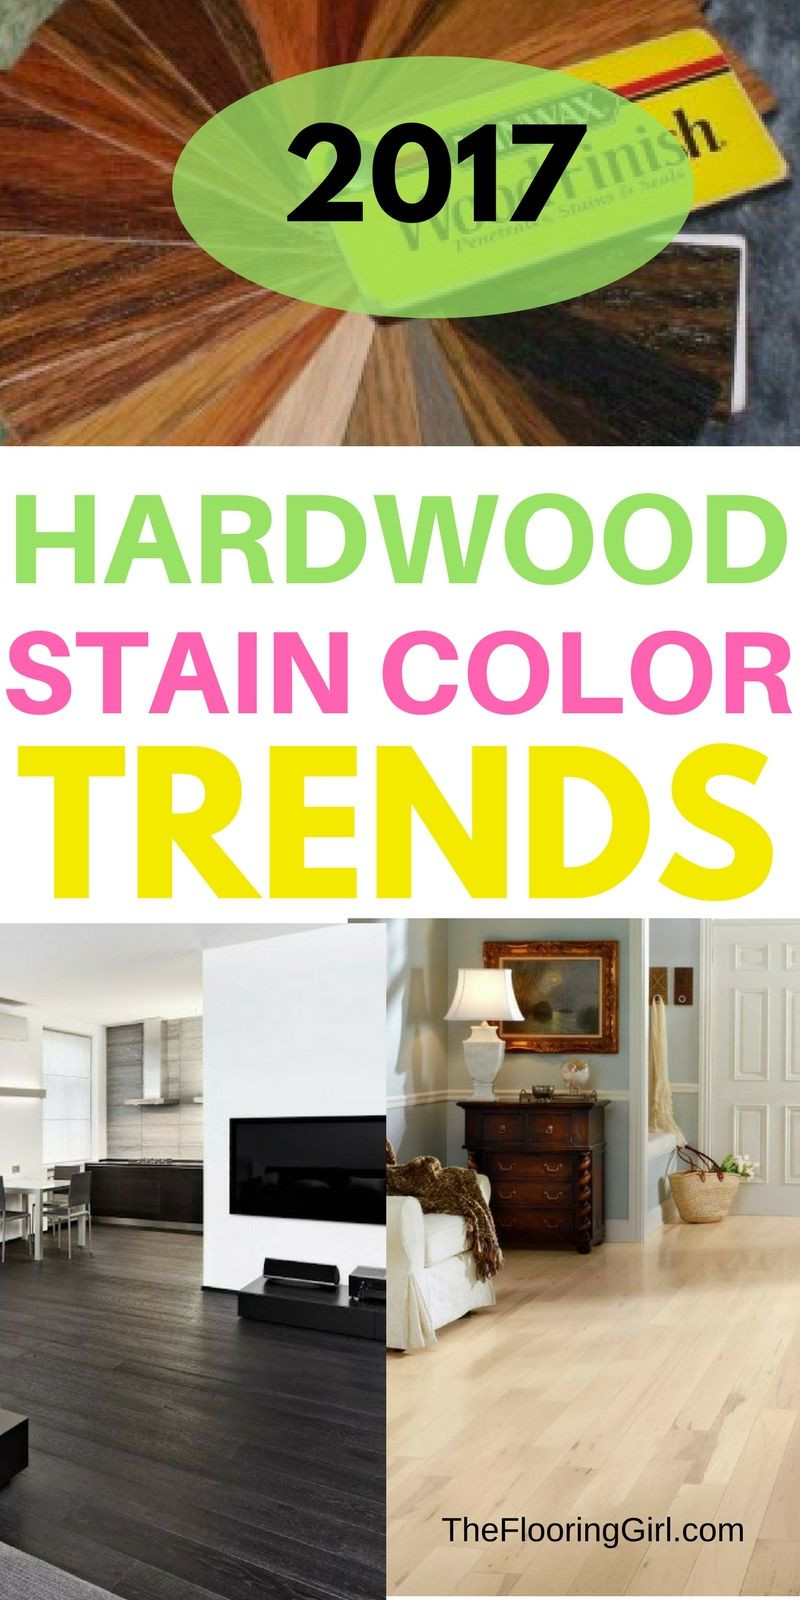 staining hardwood floors of hardwood flooring stain color trends 2018 more from the flooring within hardwood flooring stain color trends for 2017 hardwood colors that are in style theflooringgirl com